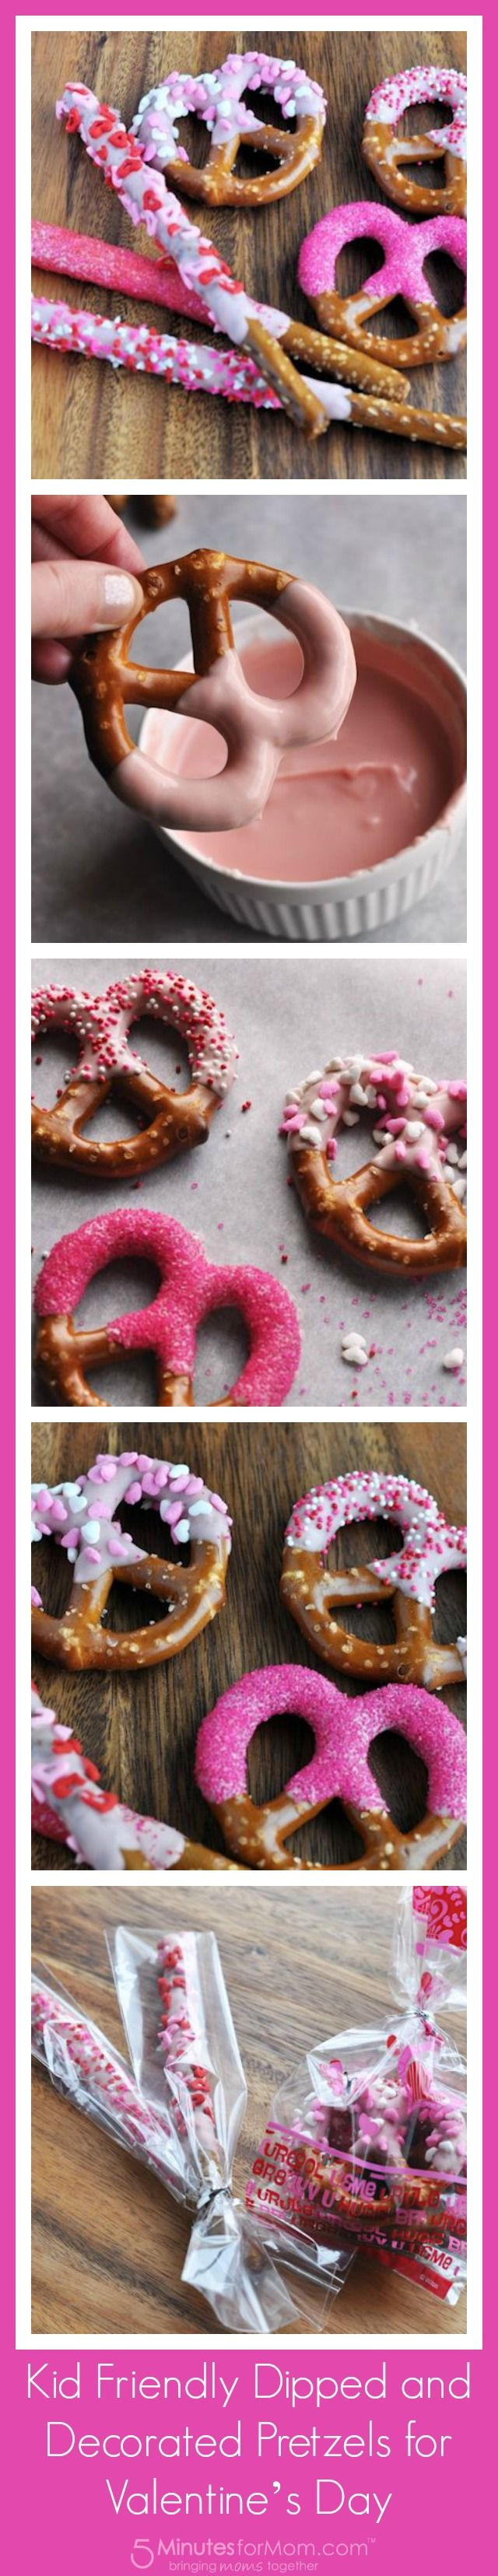 Decorated Pretzels for Valentine's Day.